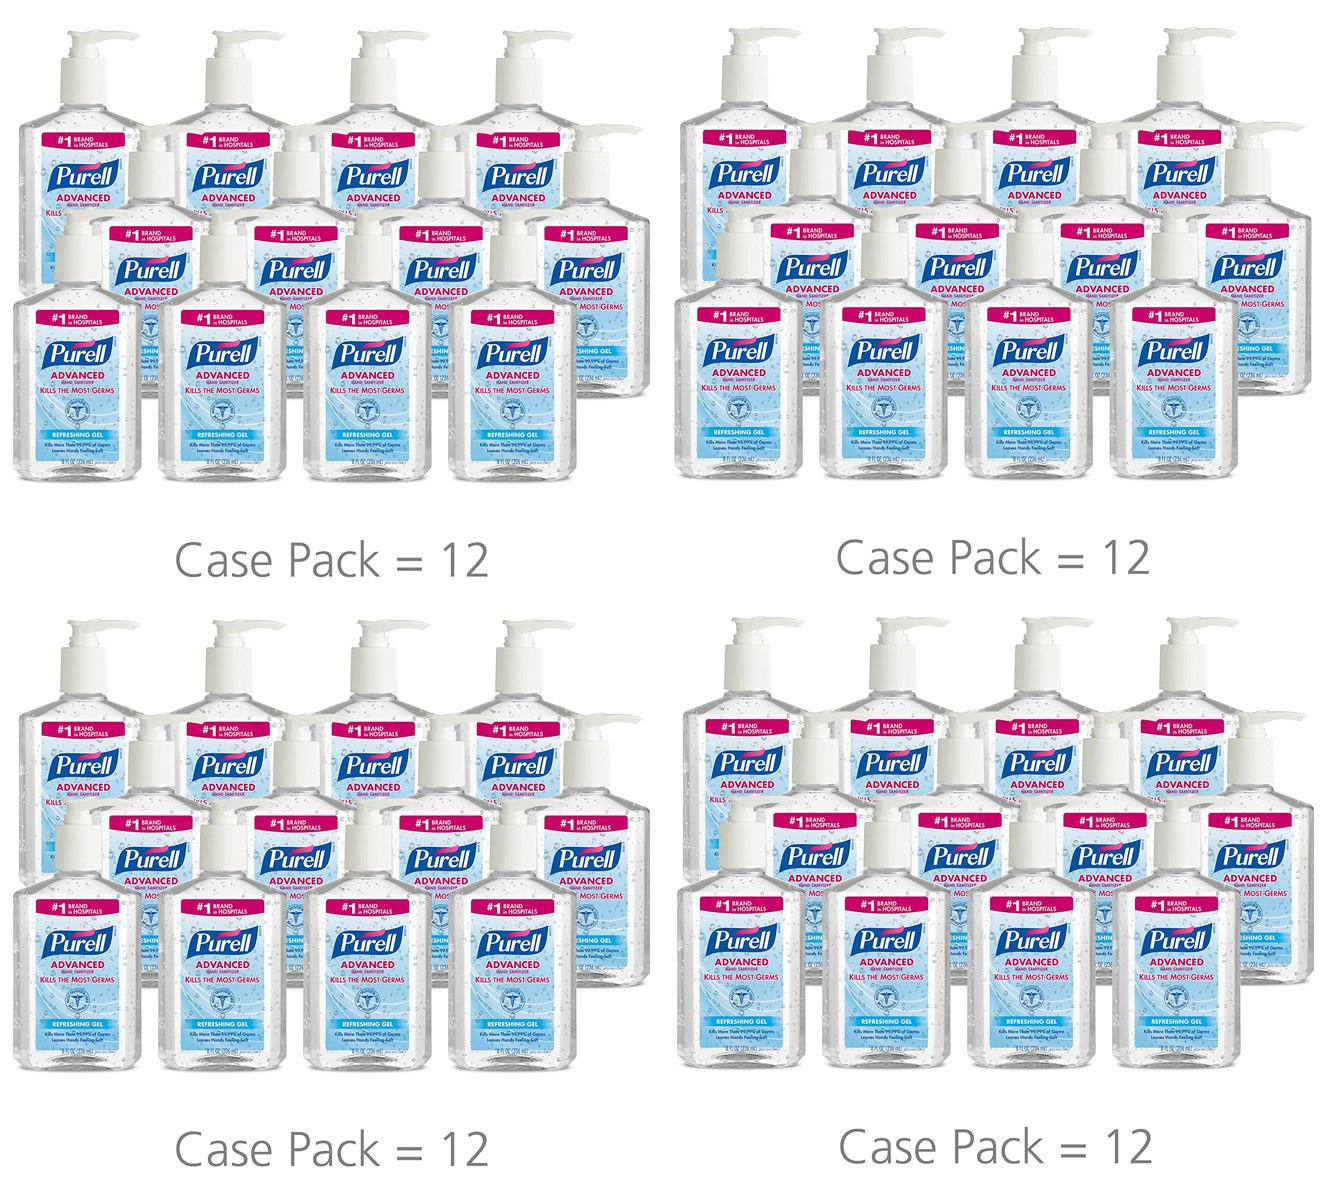 PURELL 9652 Advanced Instant Hand Sanitizer, 8 Ounce Pump Bottle (Pack of 48)